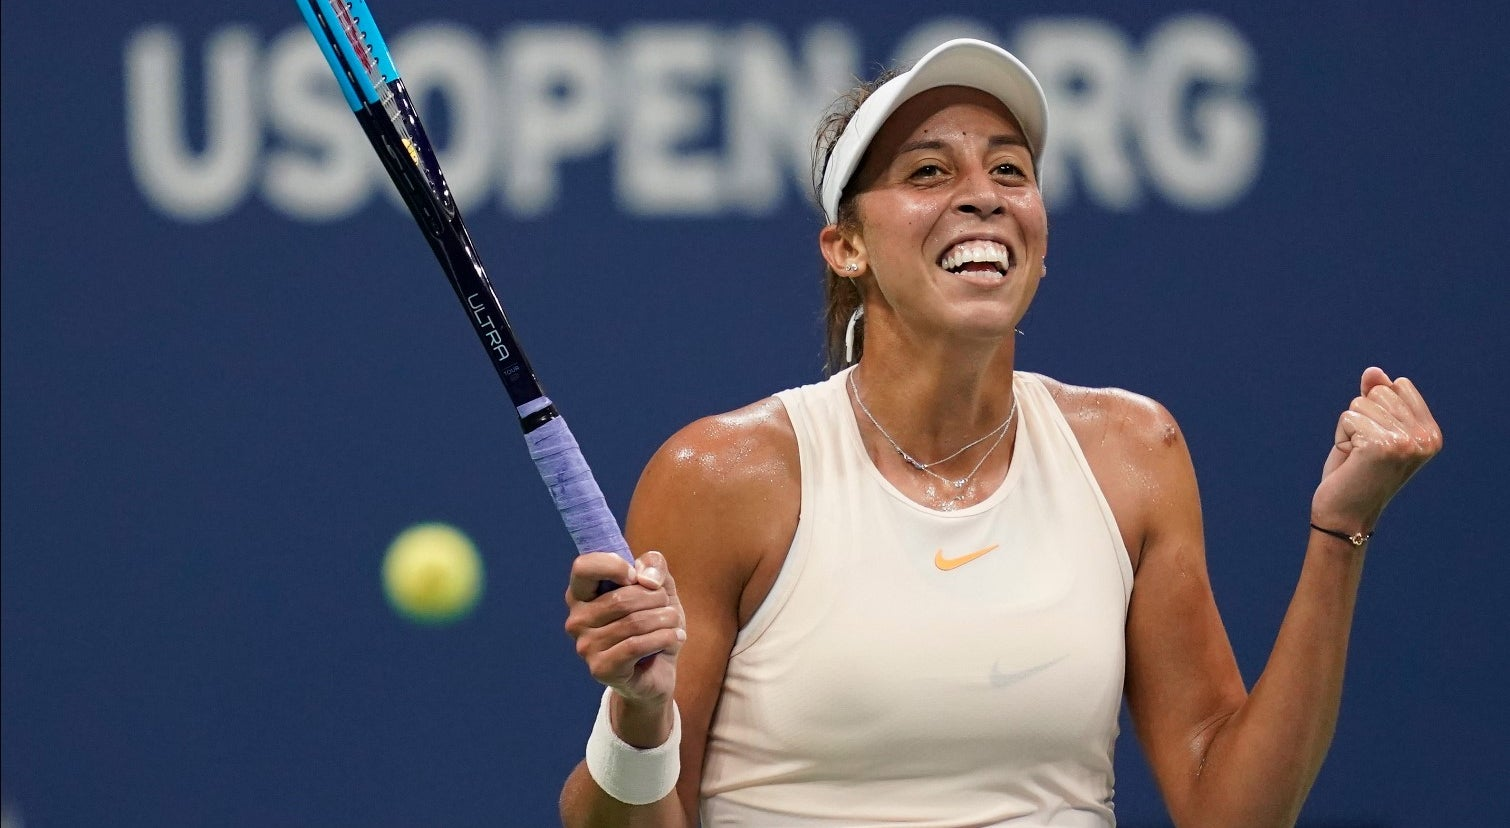 Madison Keys segue para as meias-finais do US Open